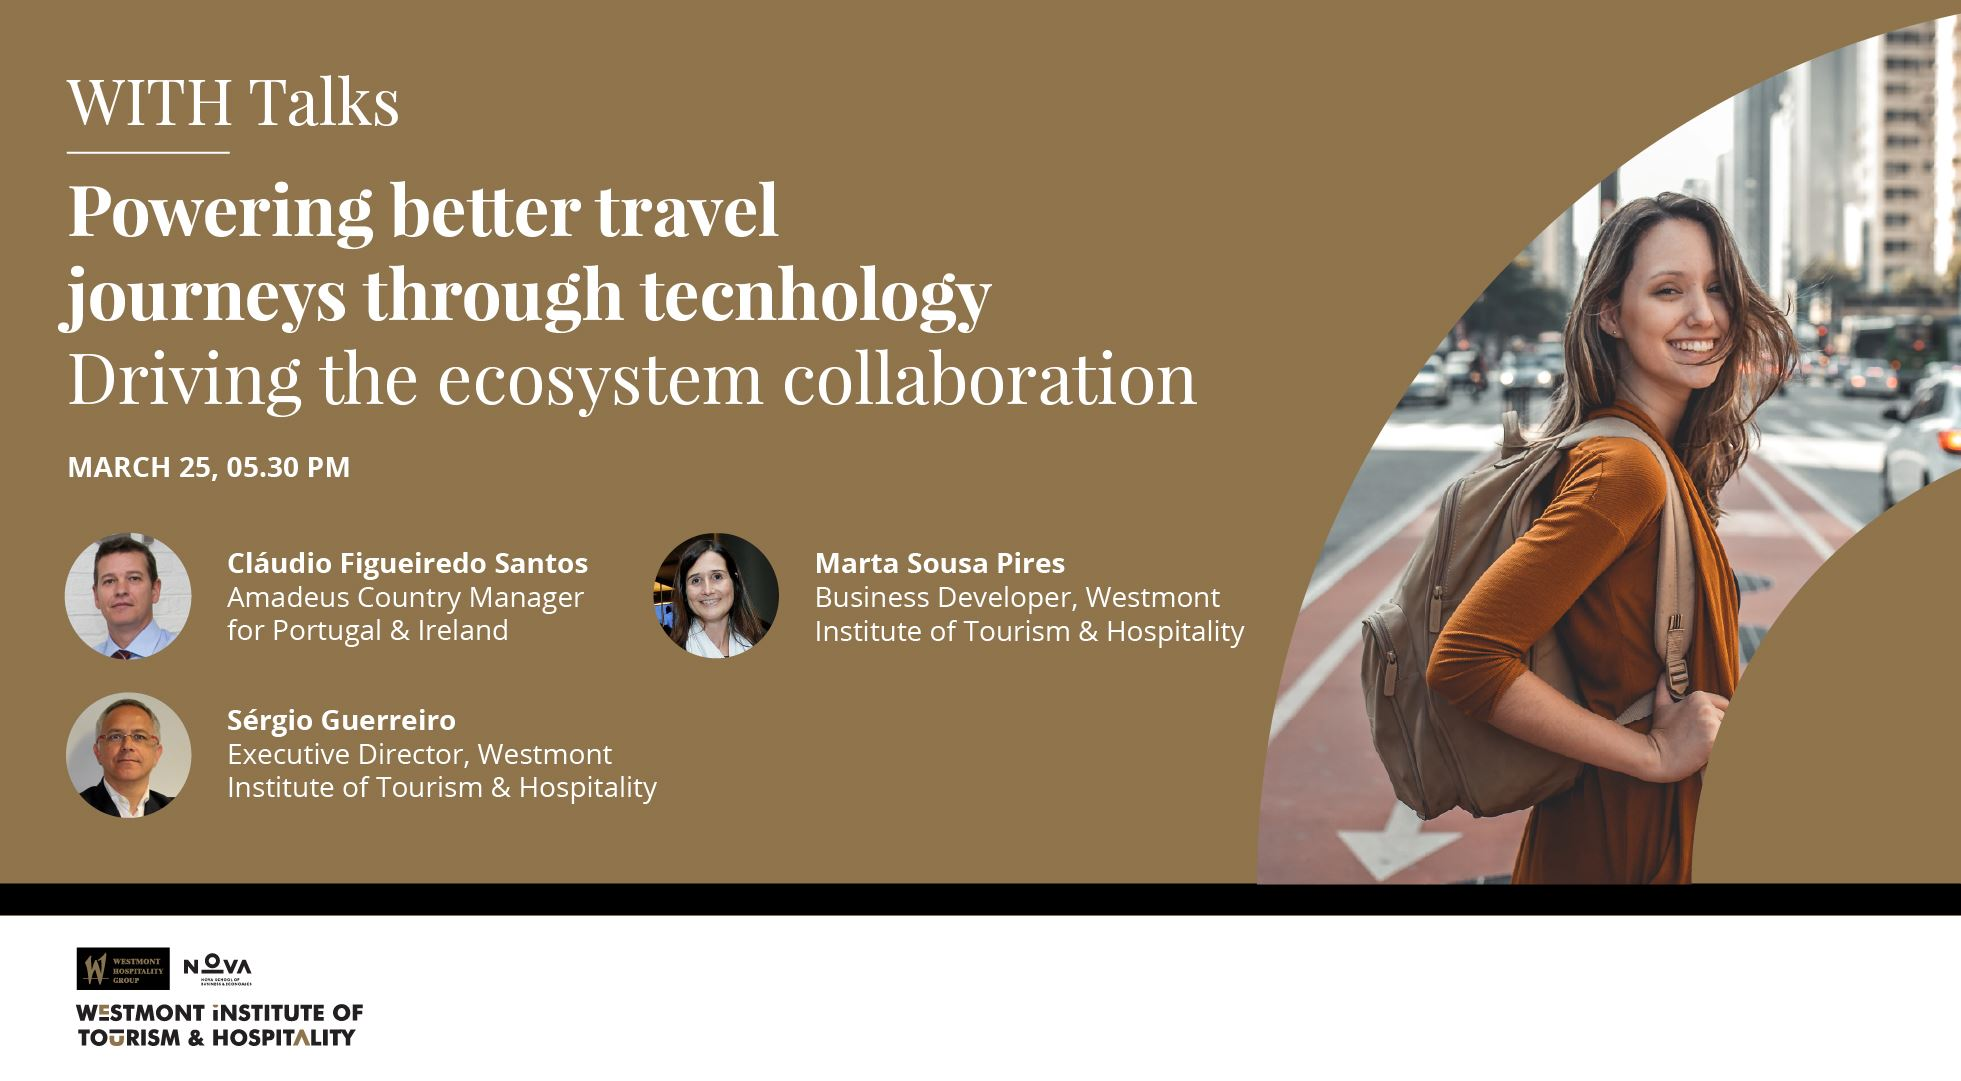 Amadeus - Powering better travel journeys through technology - Driving the ecosystem collaboration